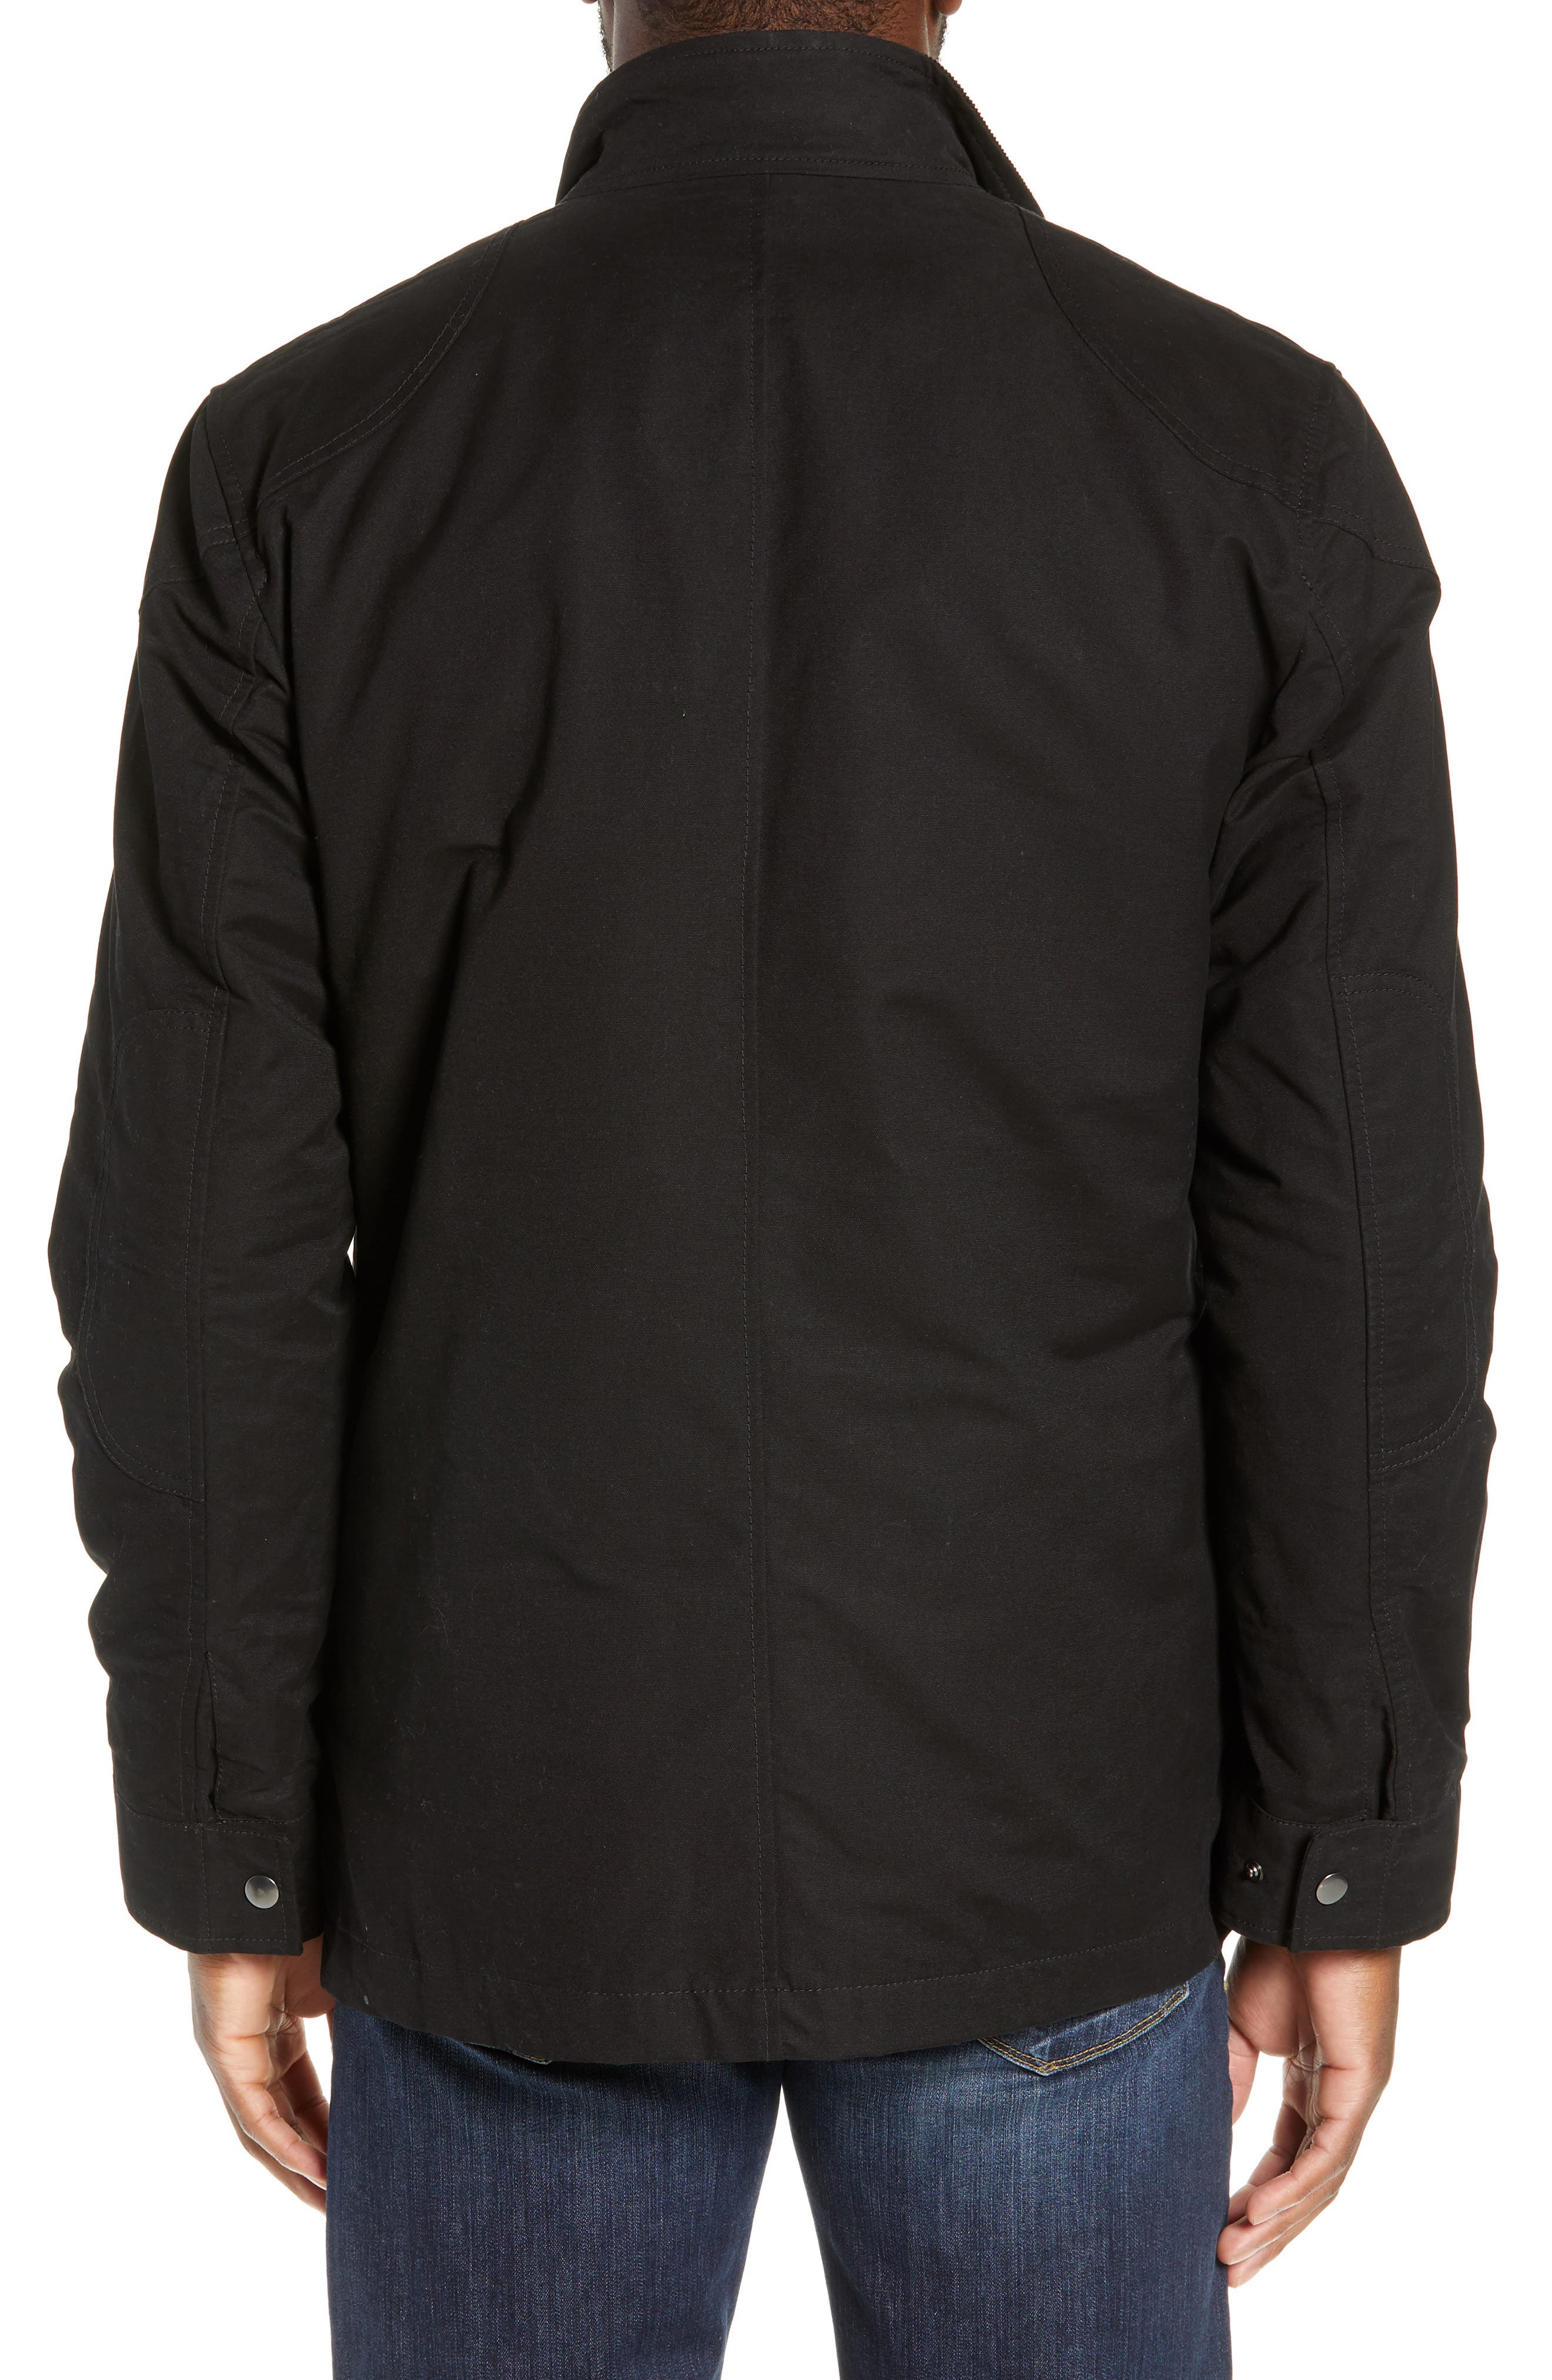 RODD & GUNN, 'Harper' Water Resistant 3-in-1 Waxed Canvas Jacket, Alternate thumbnail 4, color, ONYX